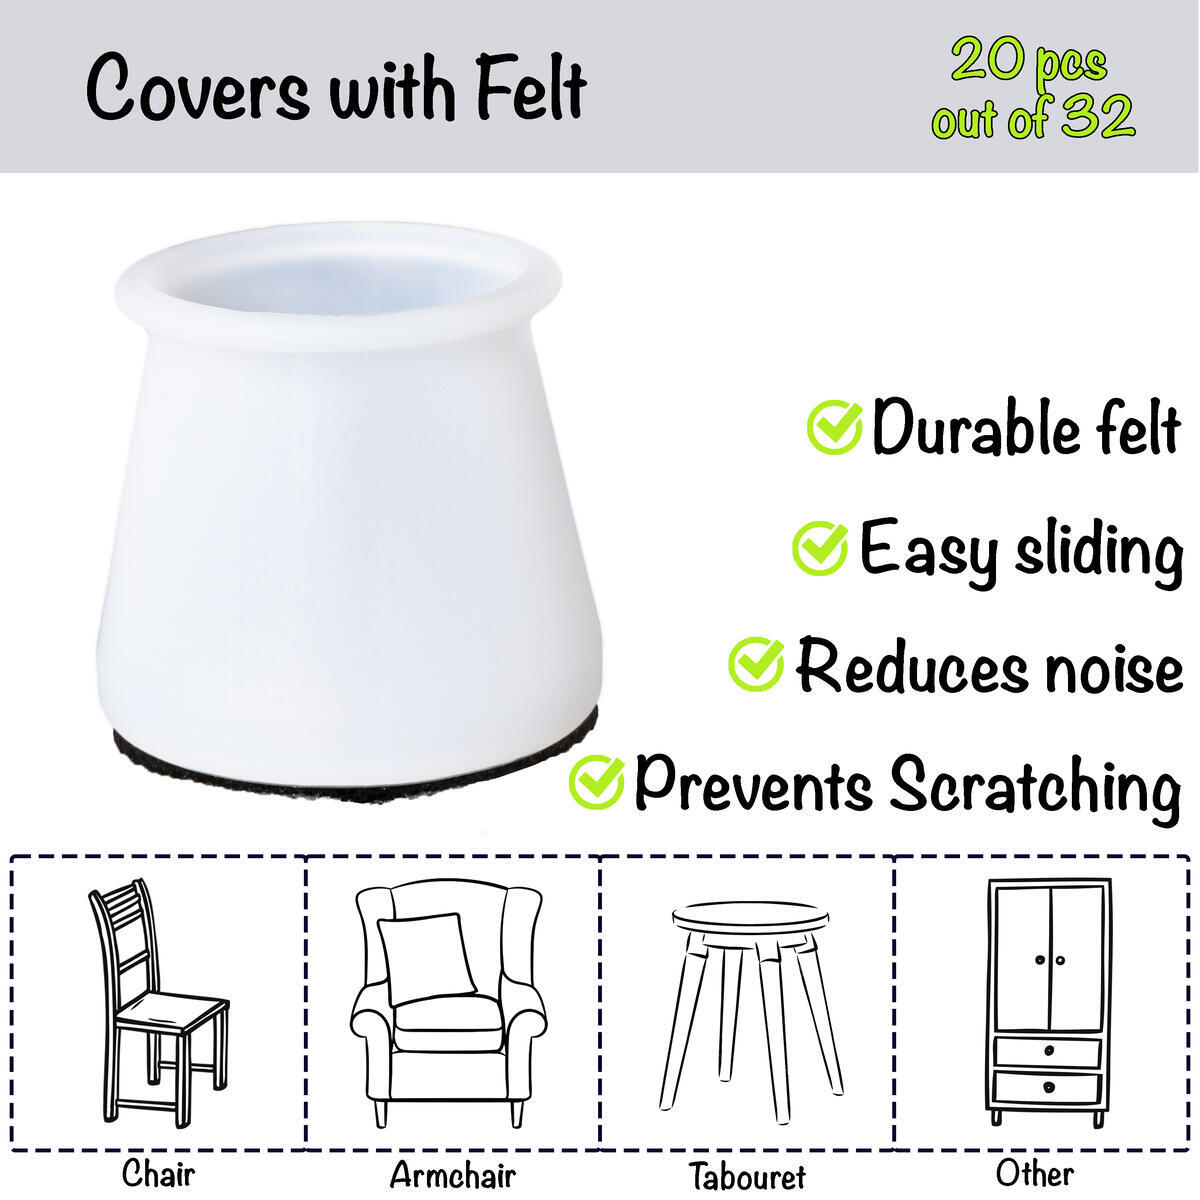 NovaHome - Premium Set 2 in 1 Silicon Protection Cover for Chair Legs (25-35mm/1-1.4 inch) | for Slide and Anti-Slip | Table Feet Covers | Chair Cover Floor Protector | 32 Pack(12pcs+20pcs)